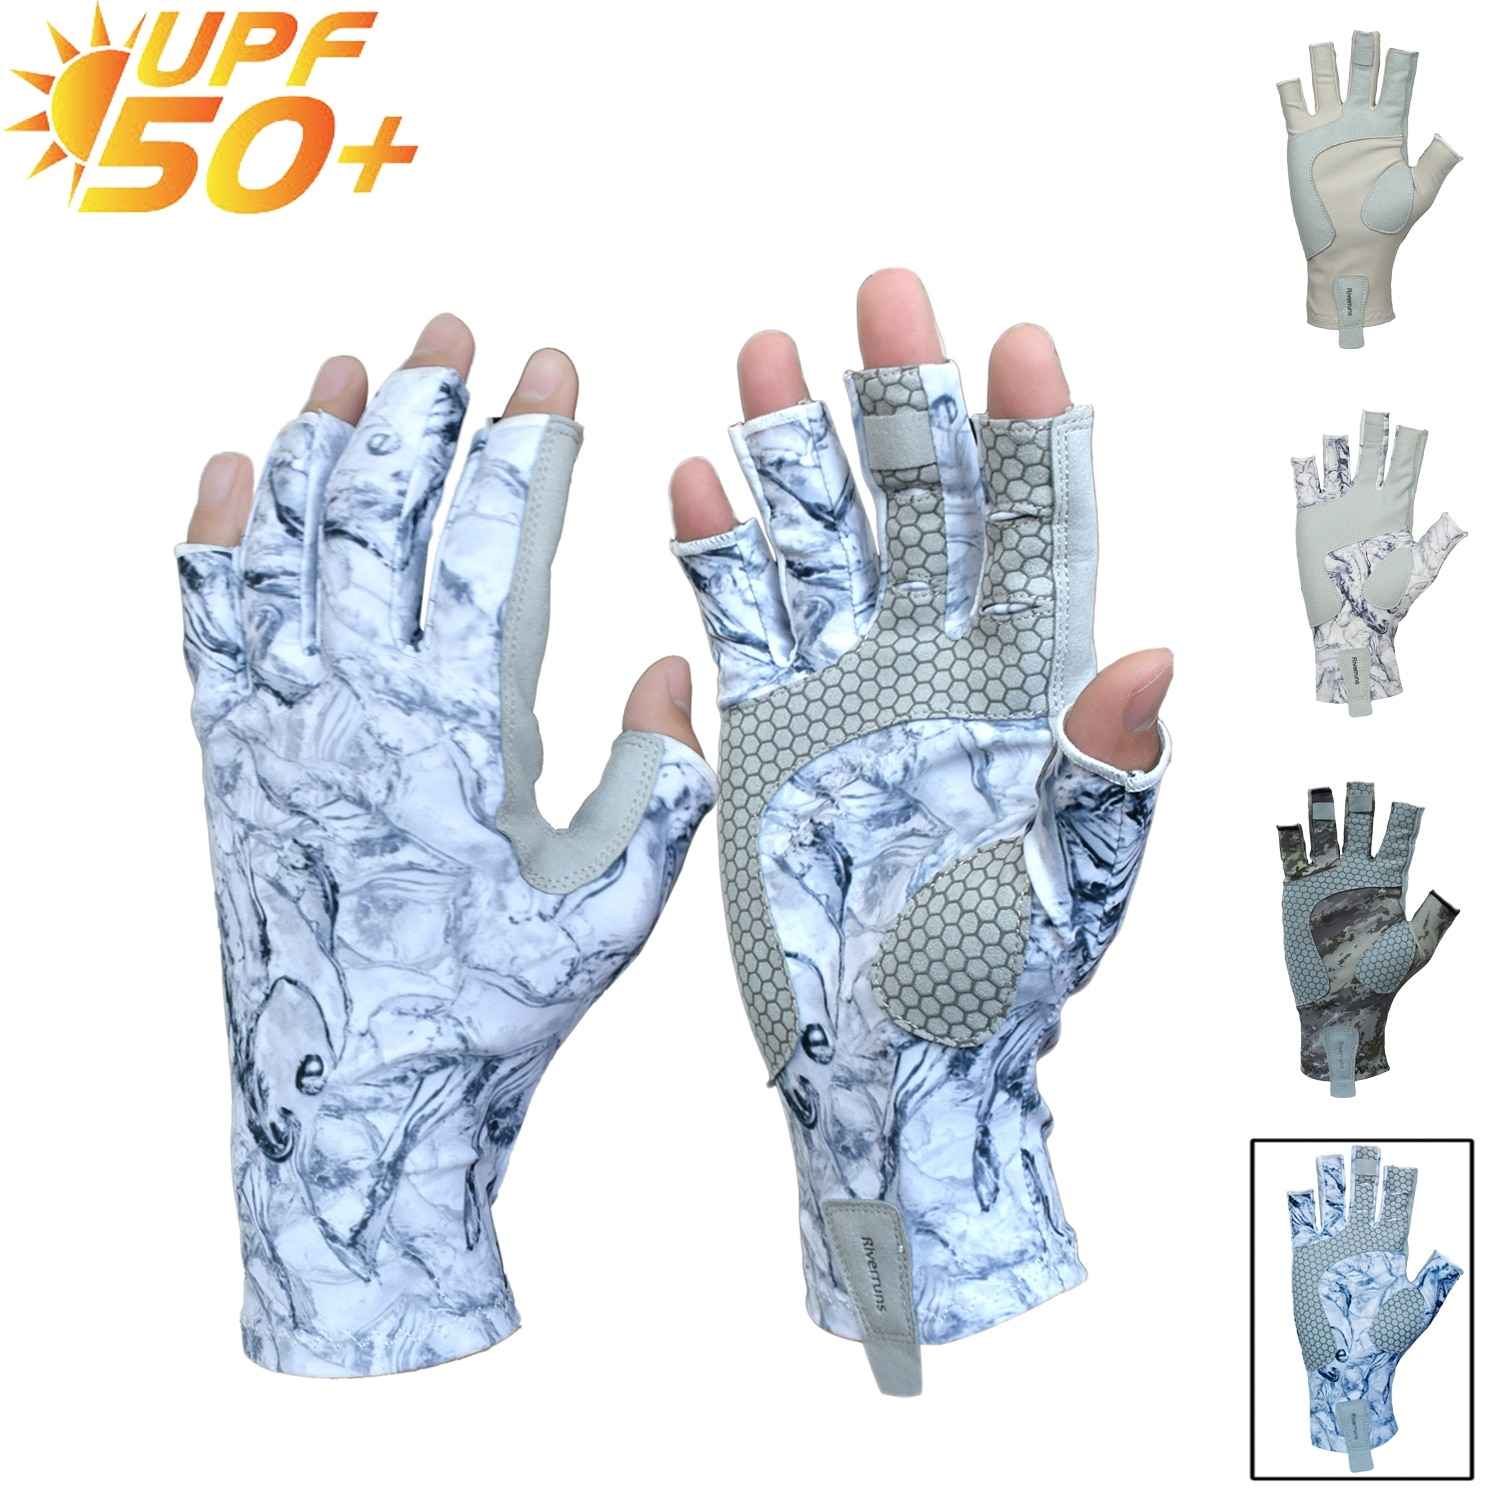 Riverruns Fingerless Fishing Gloves are designed for Men and Women Fishing, Boating, Kayaking, Hiking, Running, Cycling